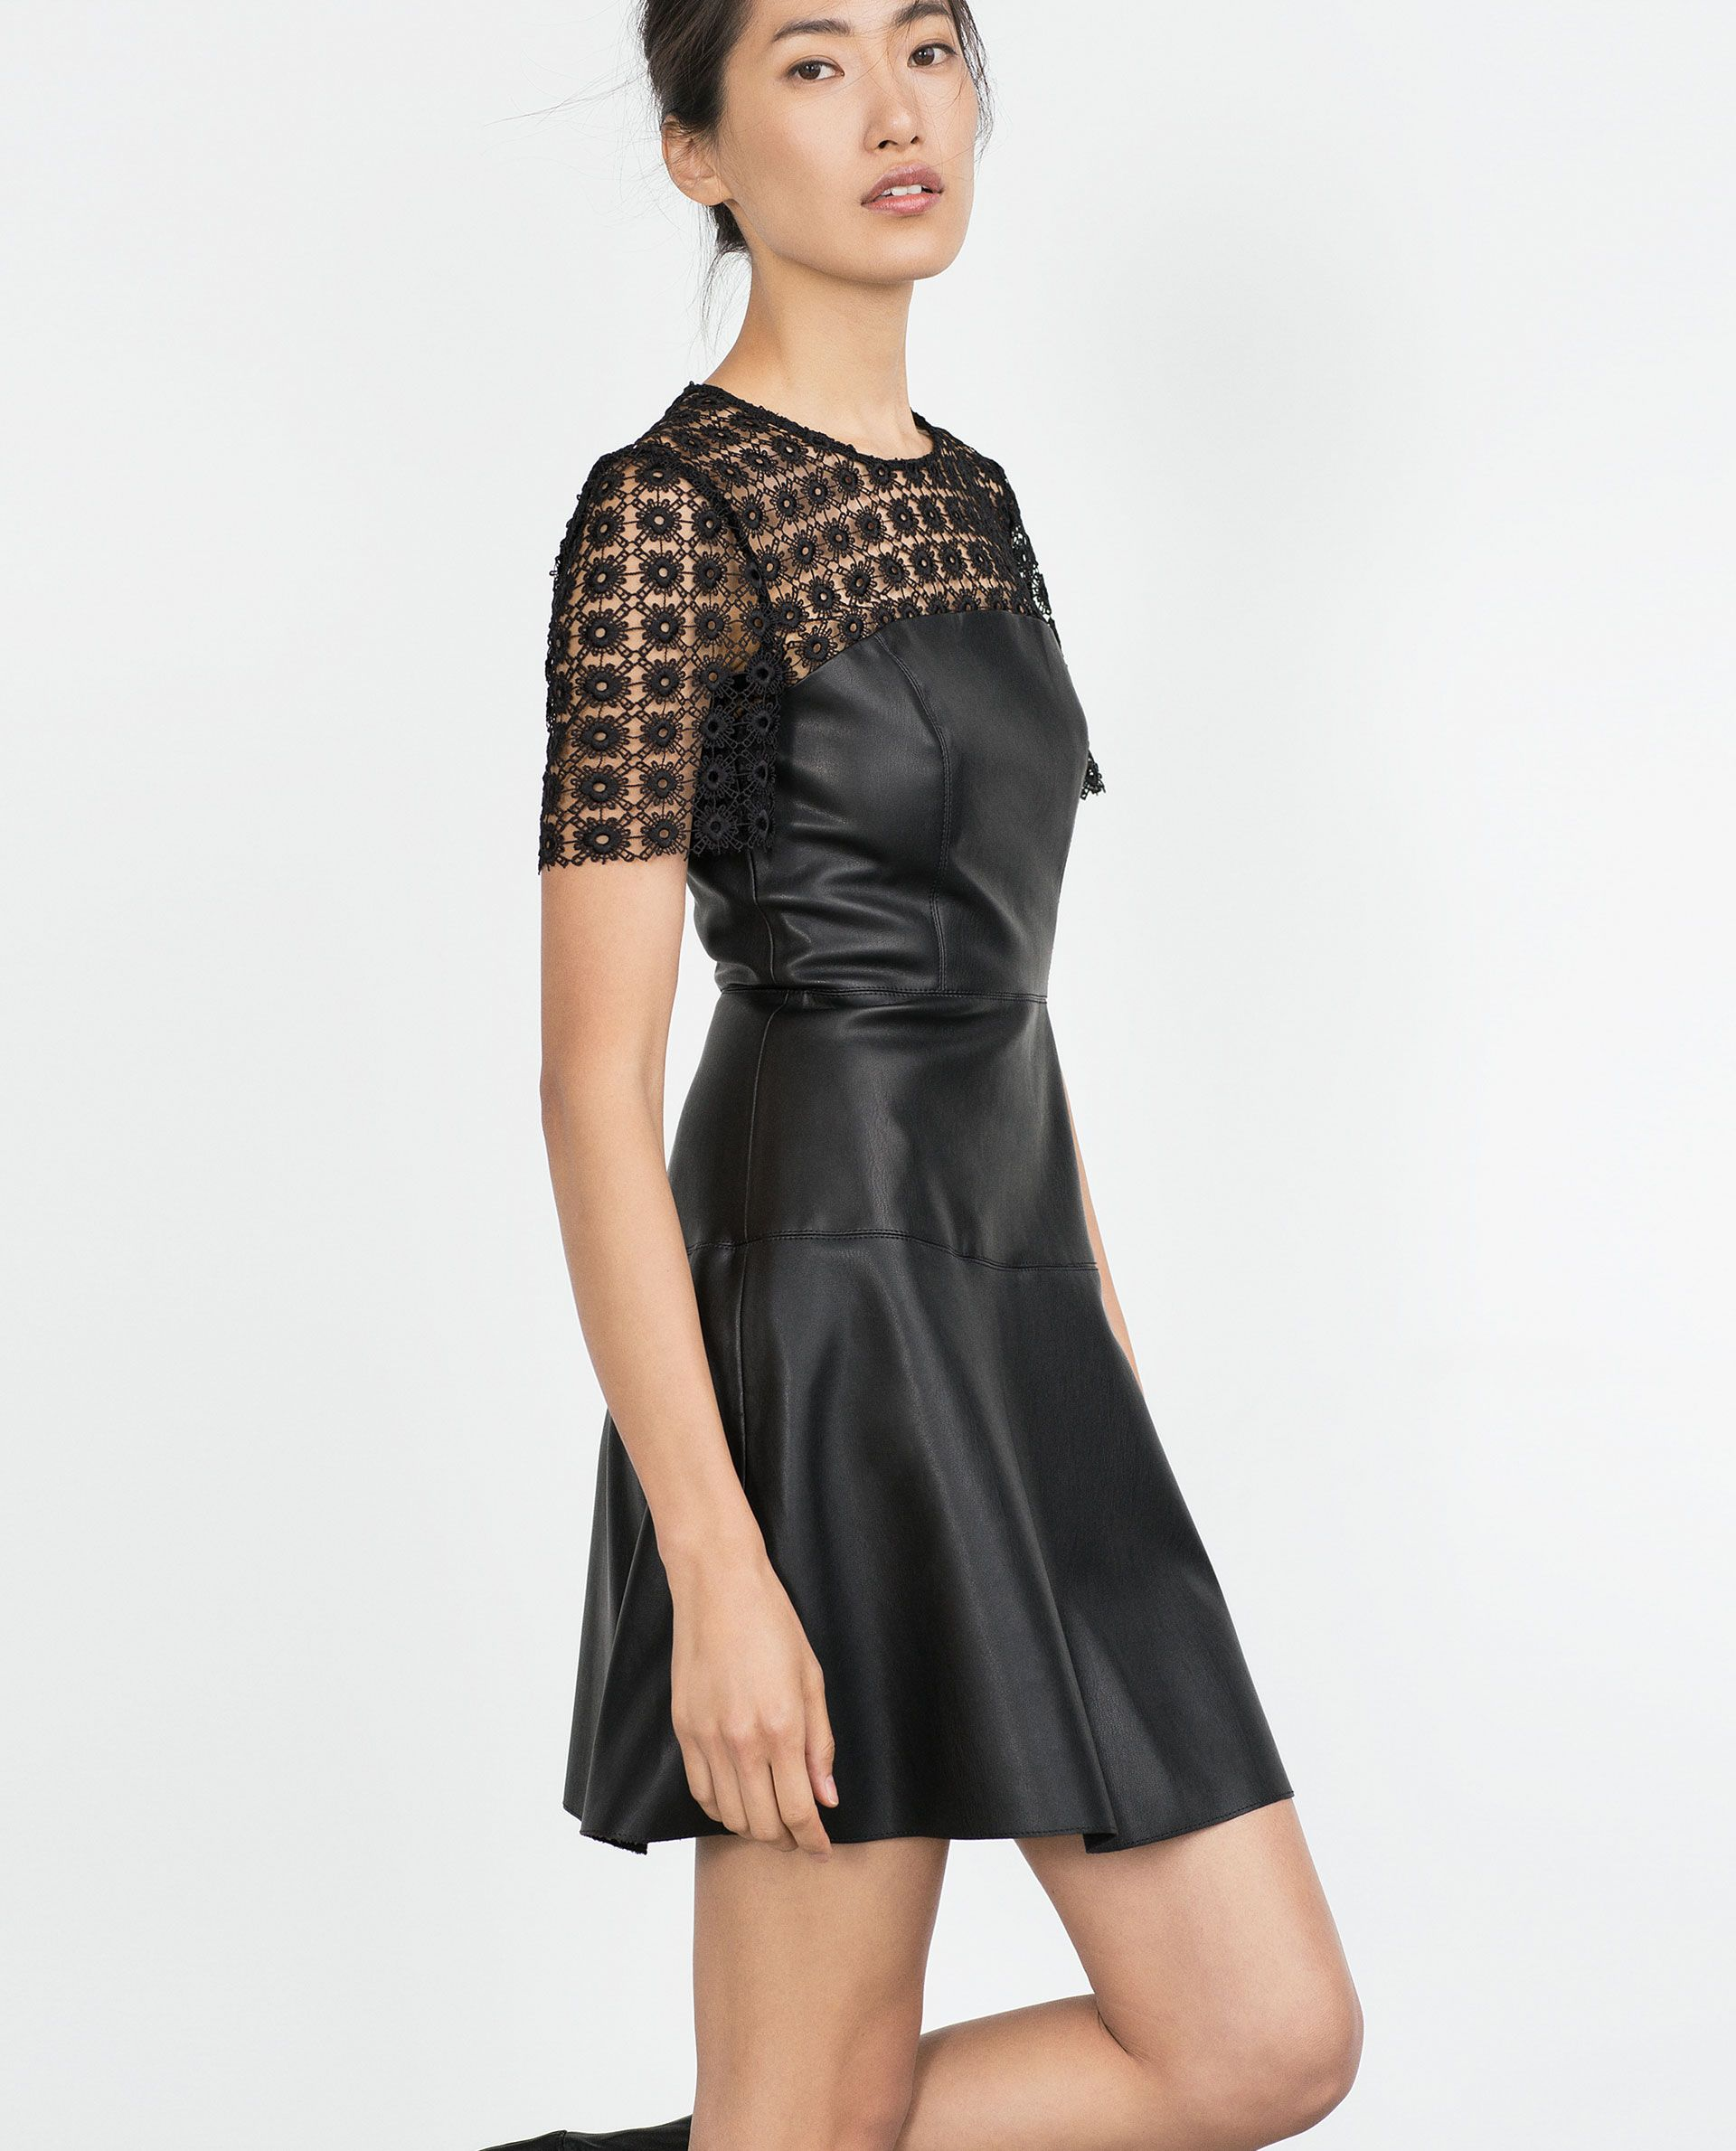 Zara Collection Aw15 Faux Leather Dress Shopping Spree